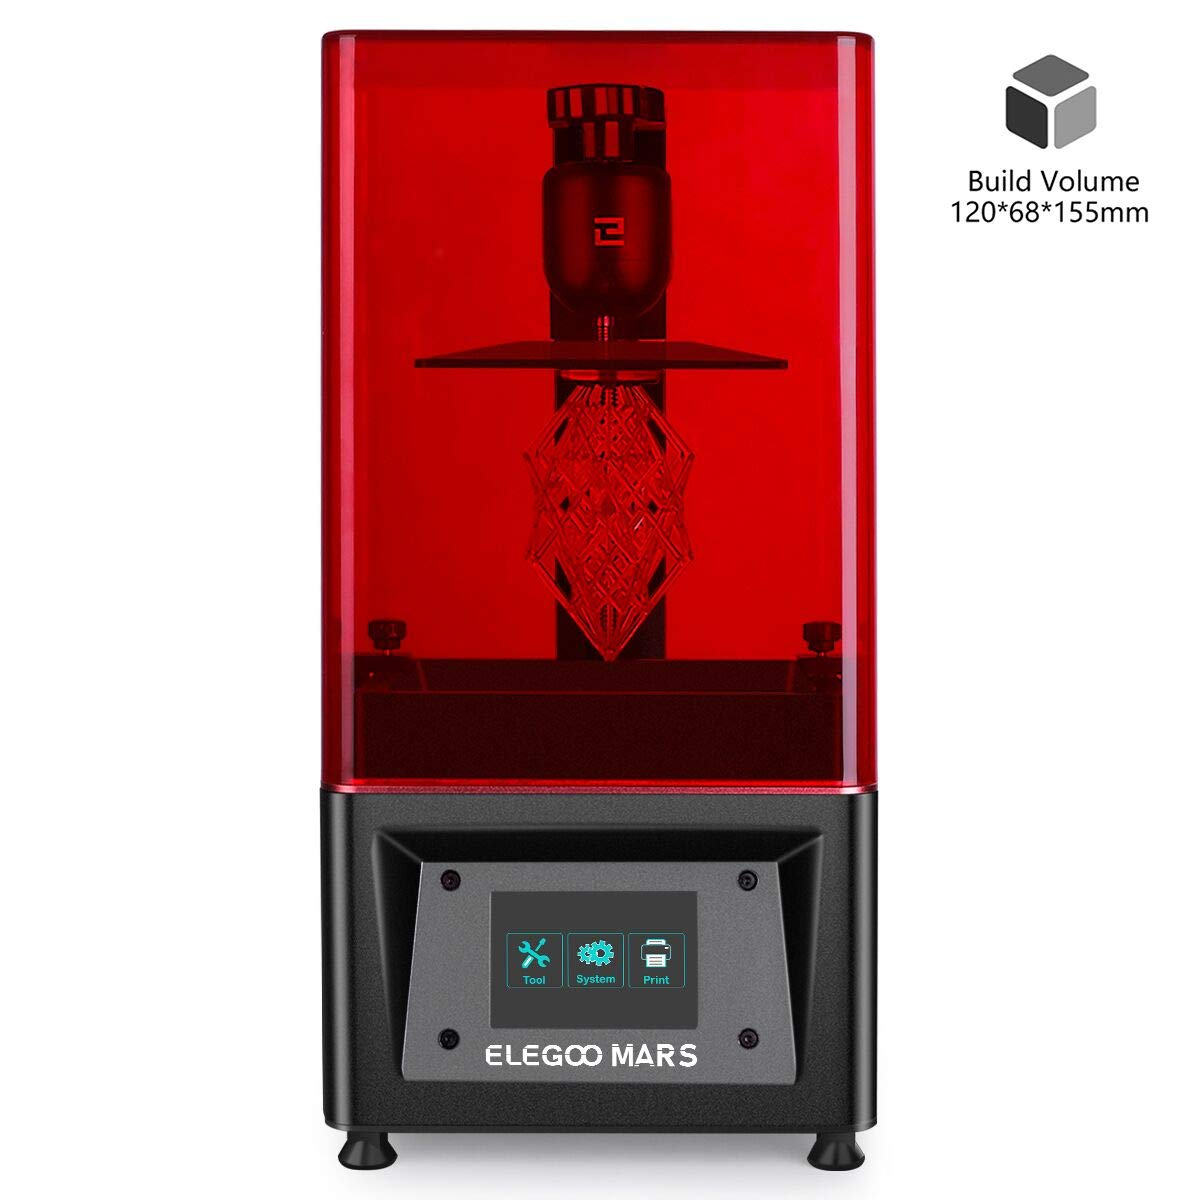 "ELEGOO Mars UV Photocuring LCD 3D Printer with 3.5'' Smart Touch Color Screen Off-line Print 4.72""(L) x 2.68""(W) x 6.1""(H) Printing Size Black Version"